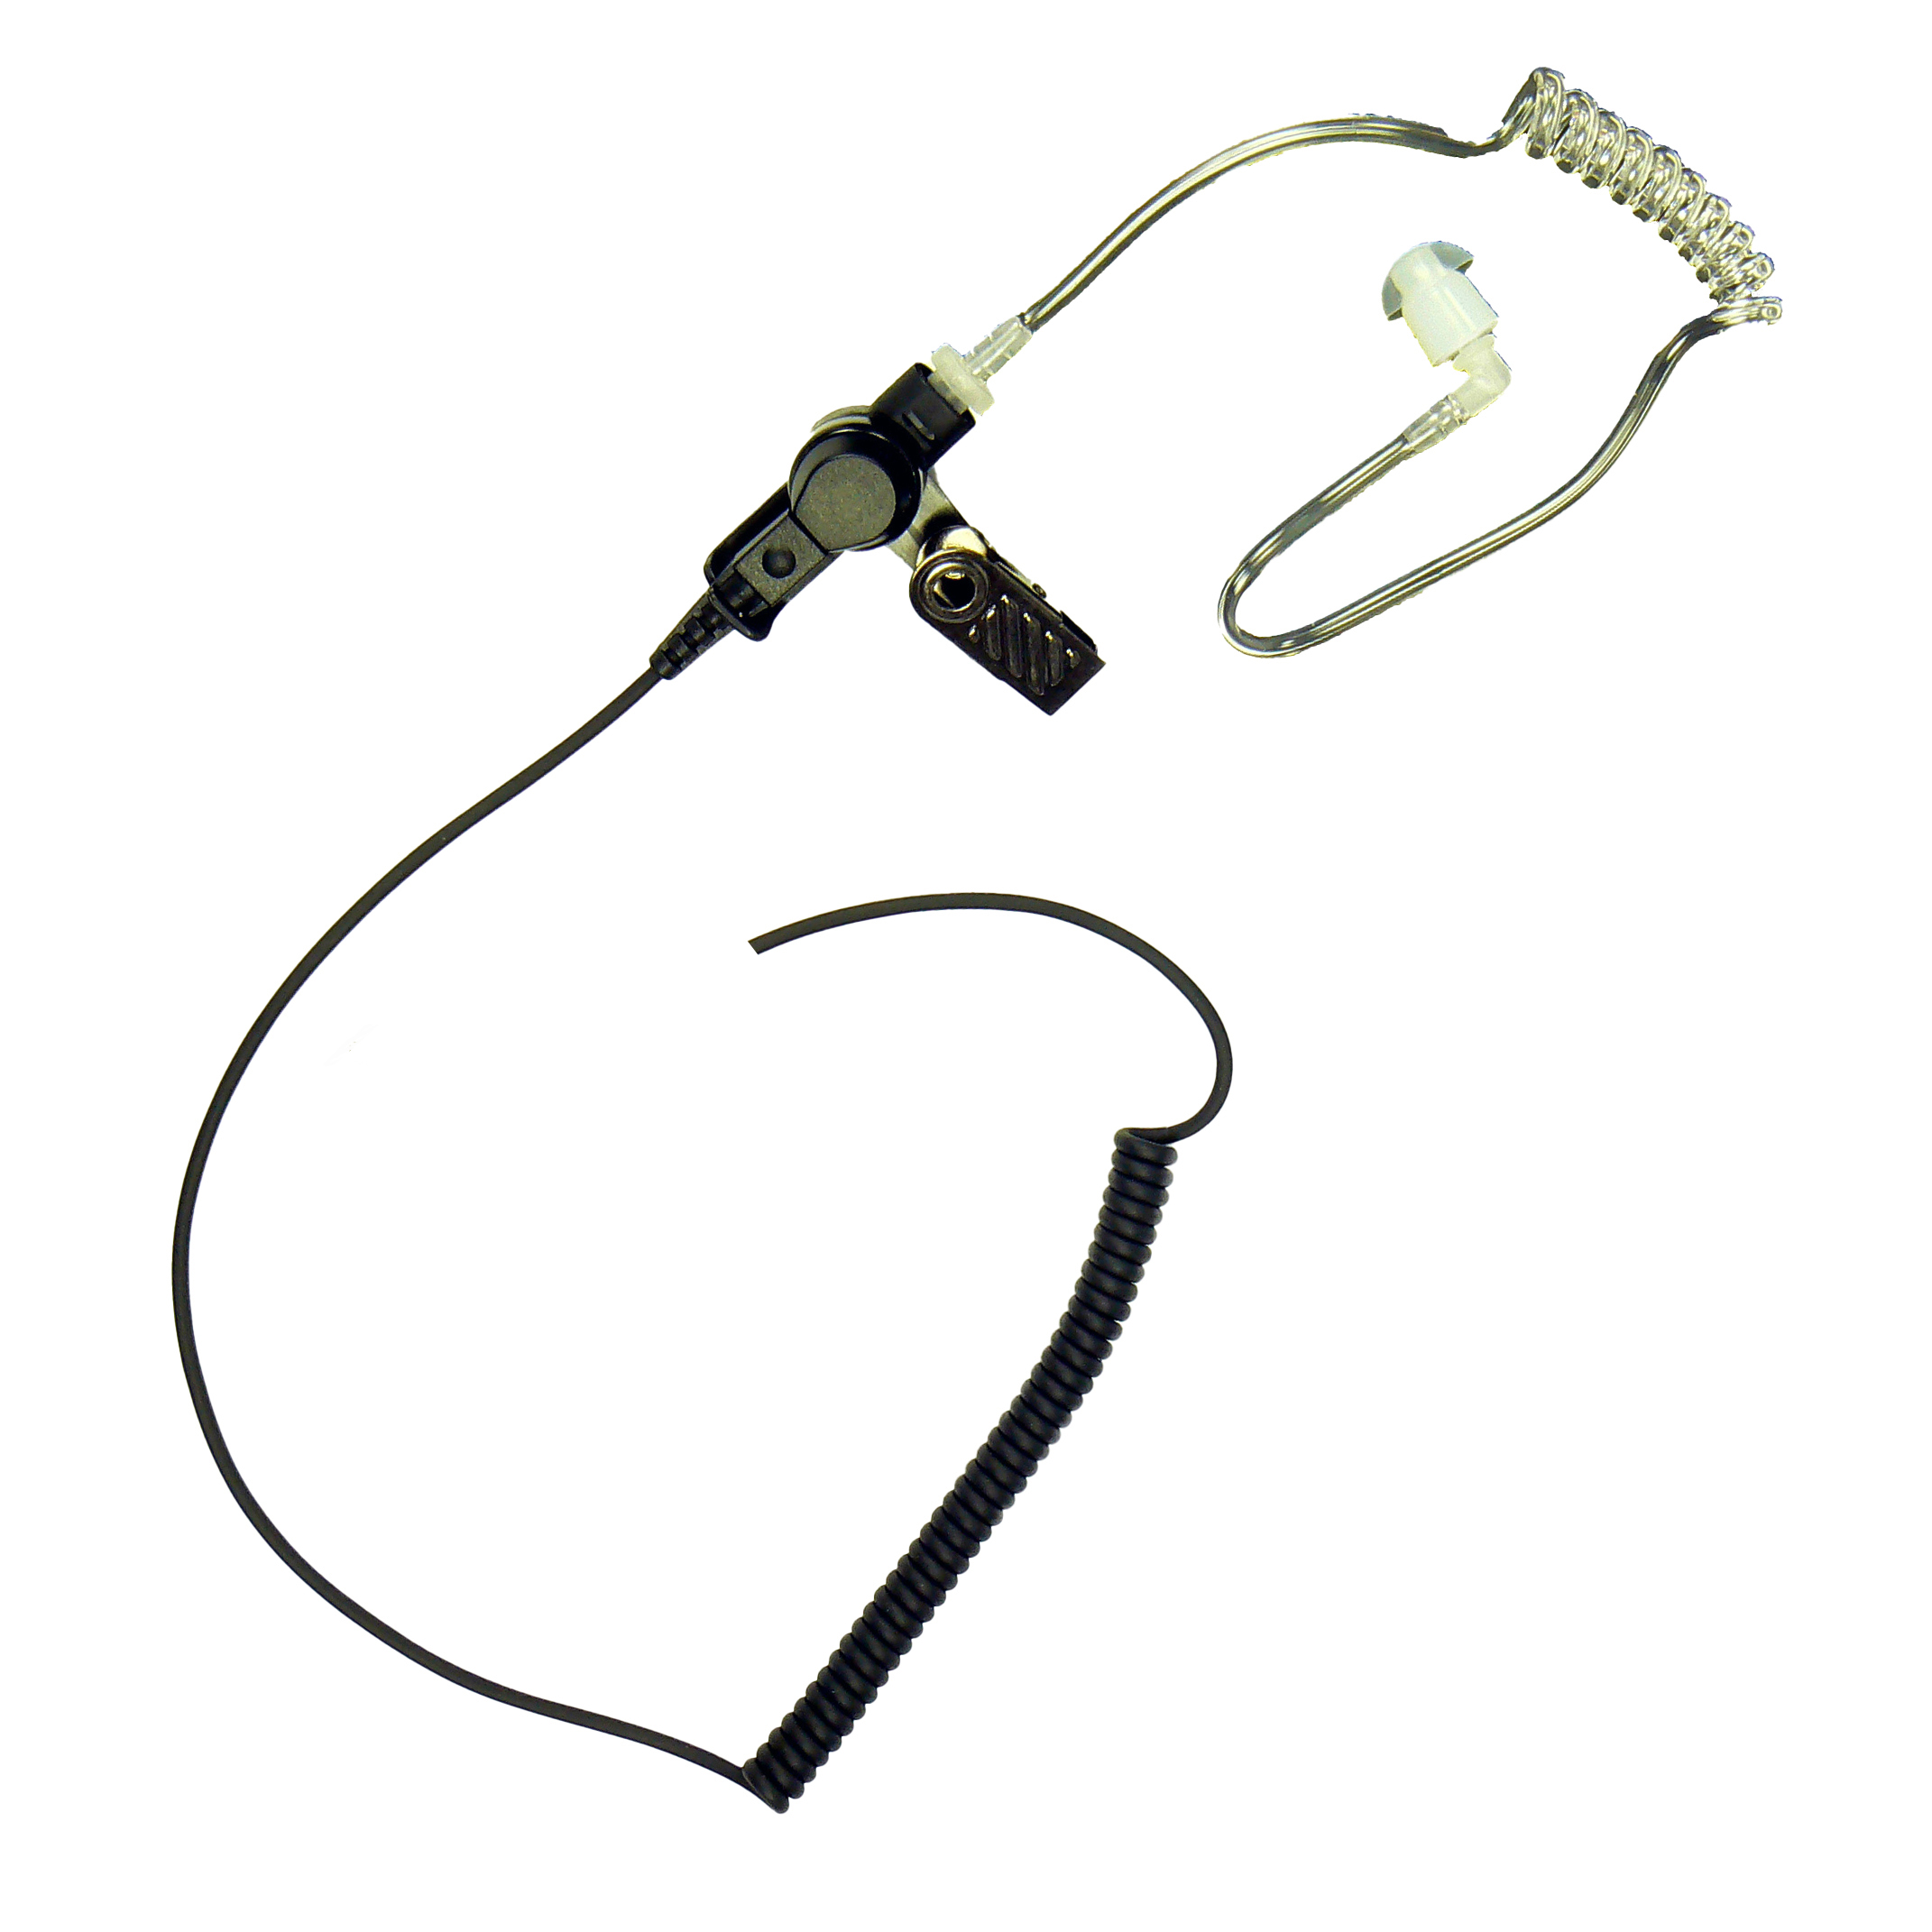 Acoustic tube listen-only earpiece